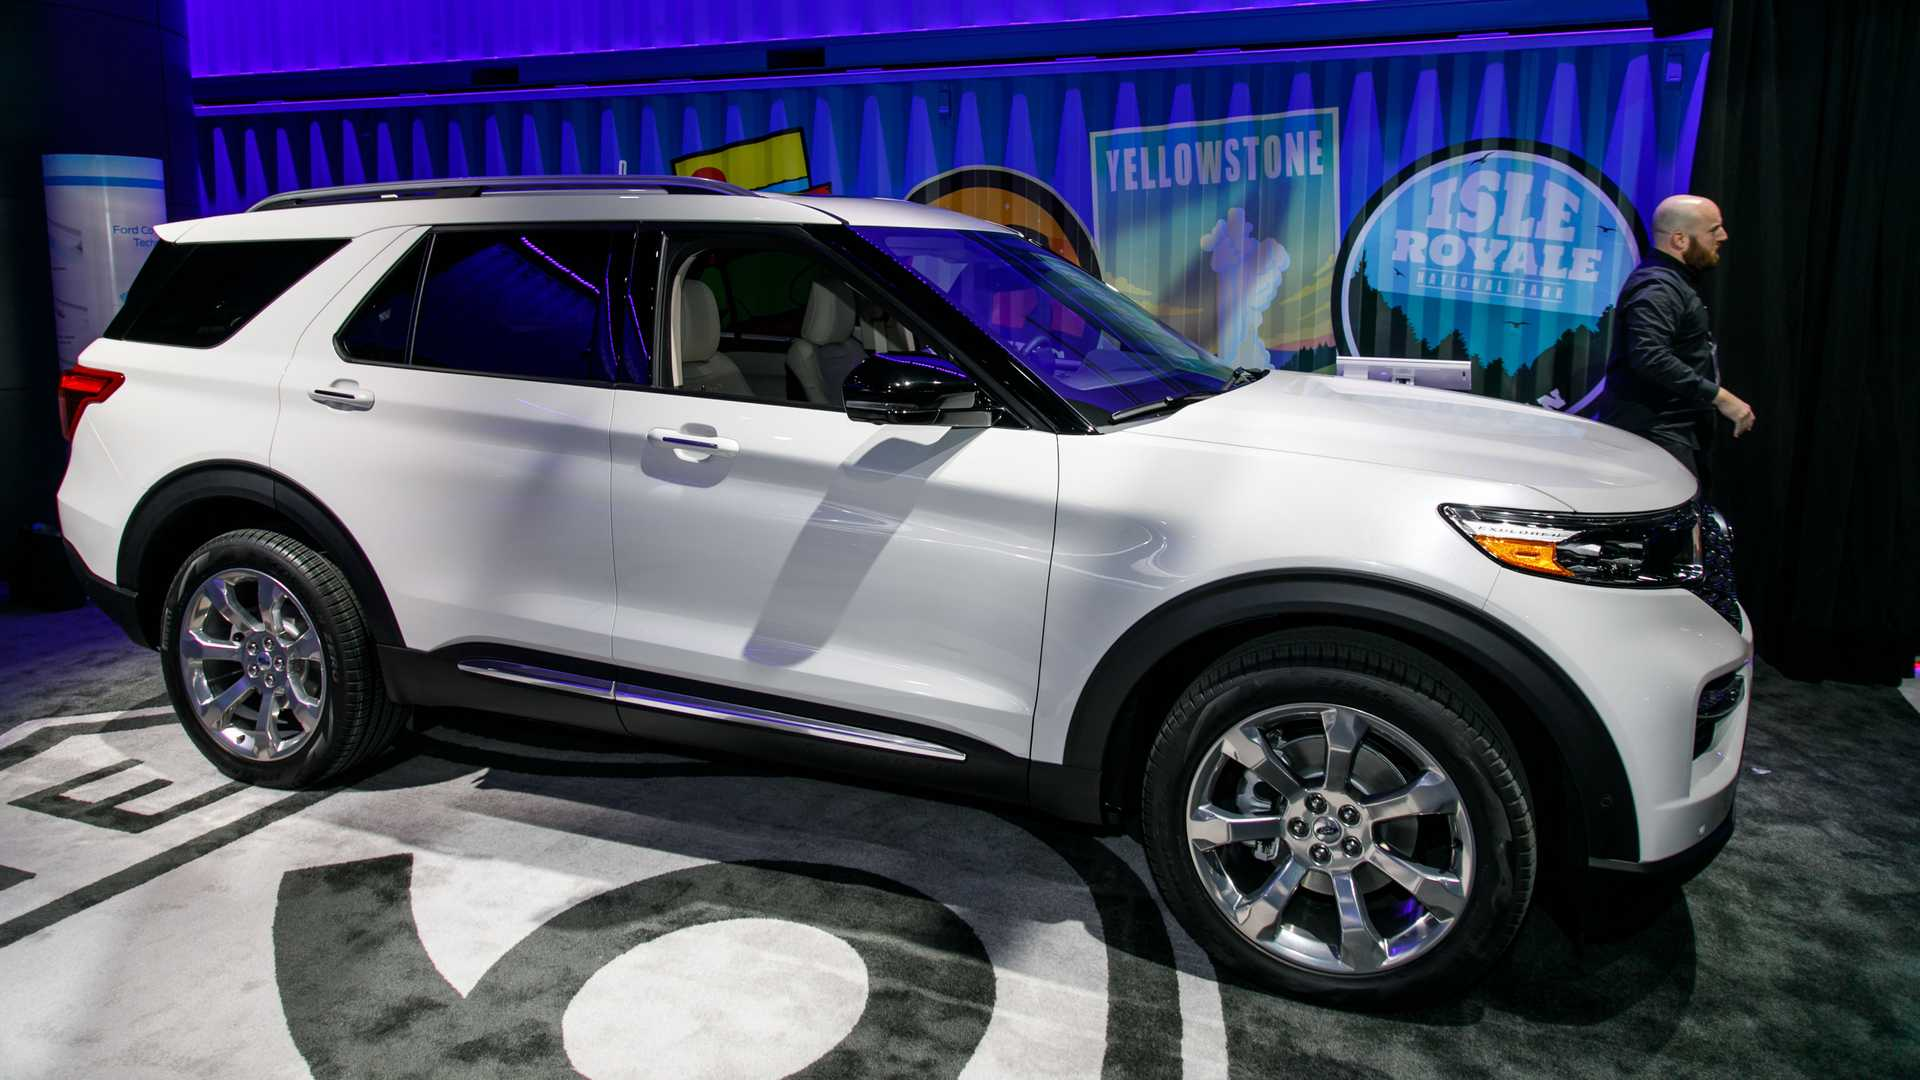 71 Gallery of 2020 Ford Explorer Build And Price Pricing by 2020 Ford Explorer Build And Price